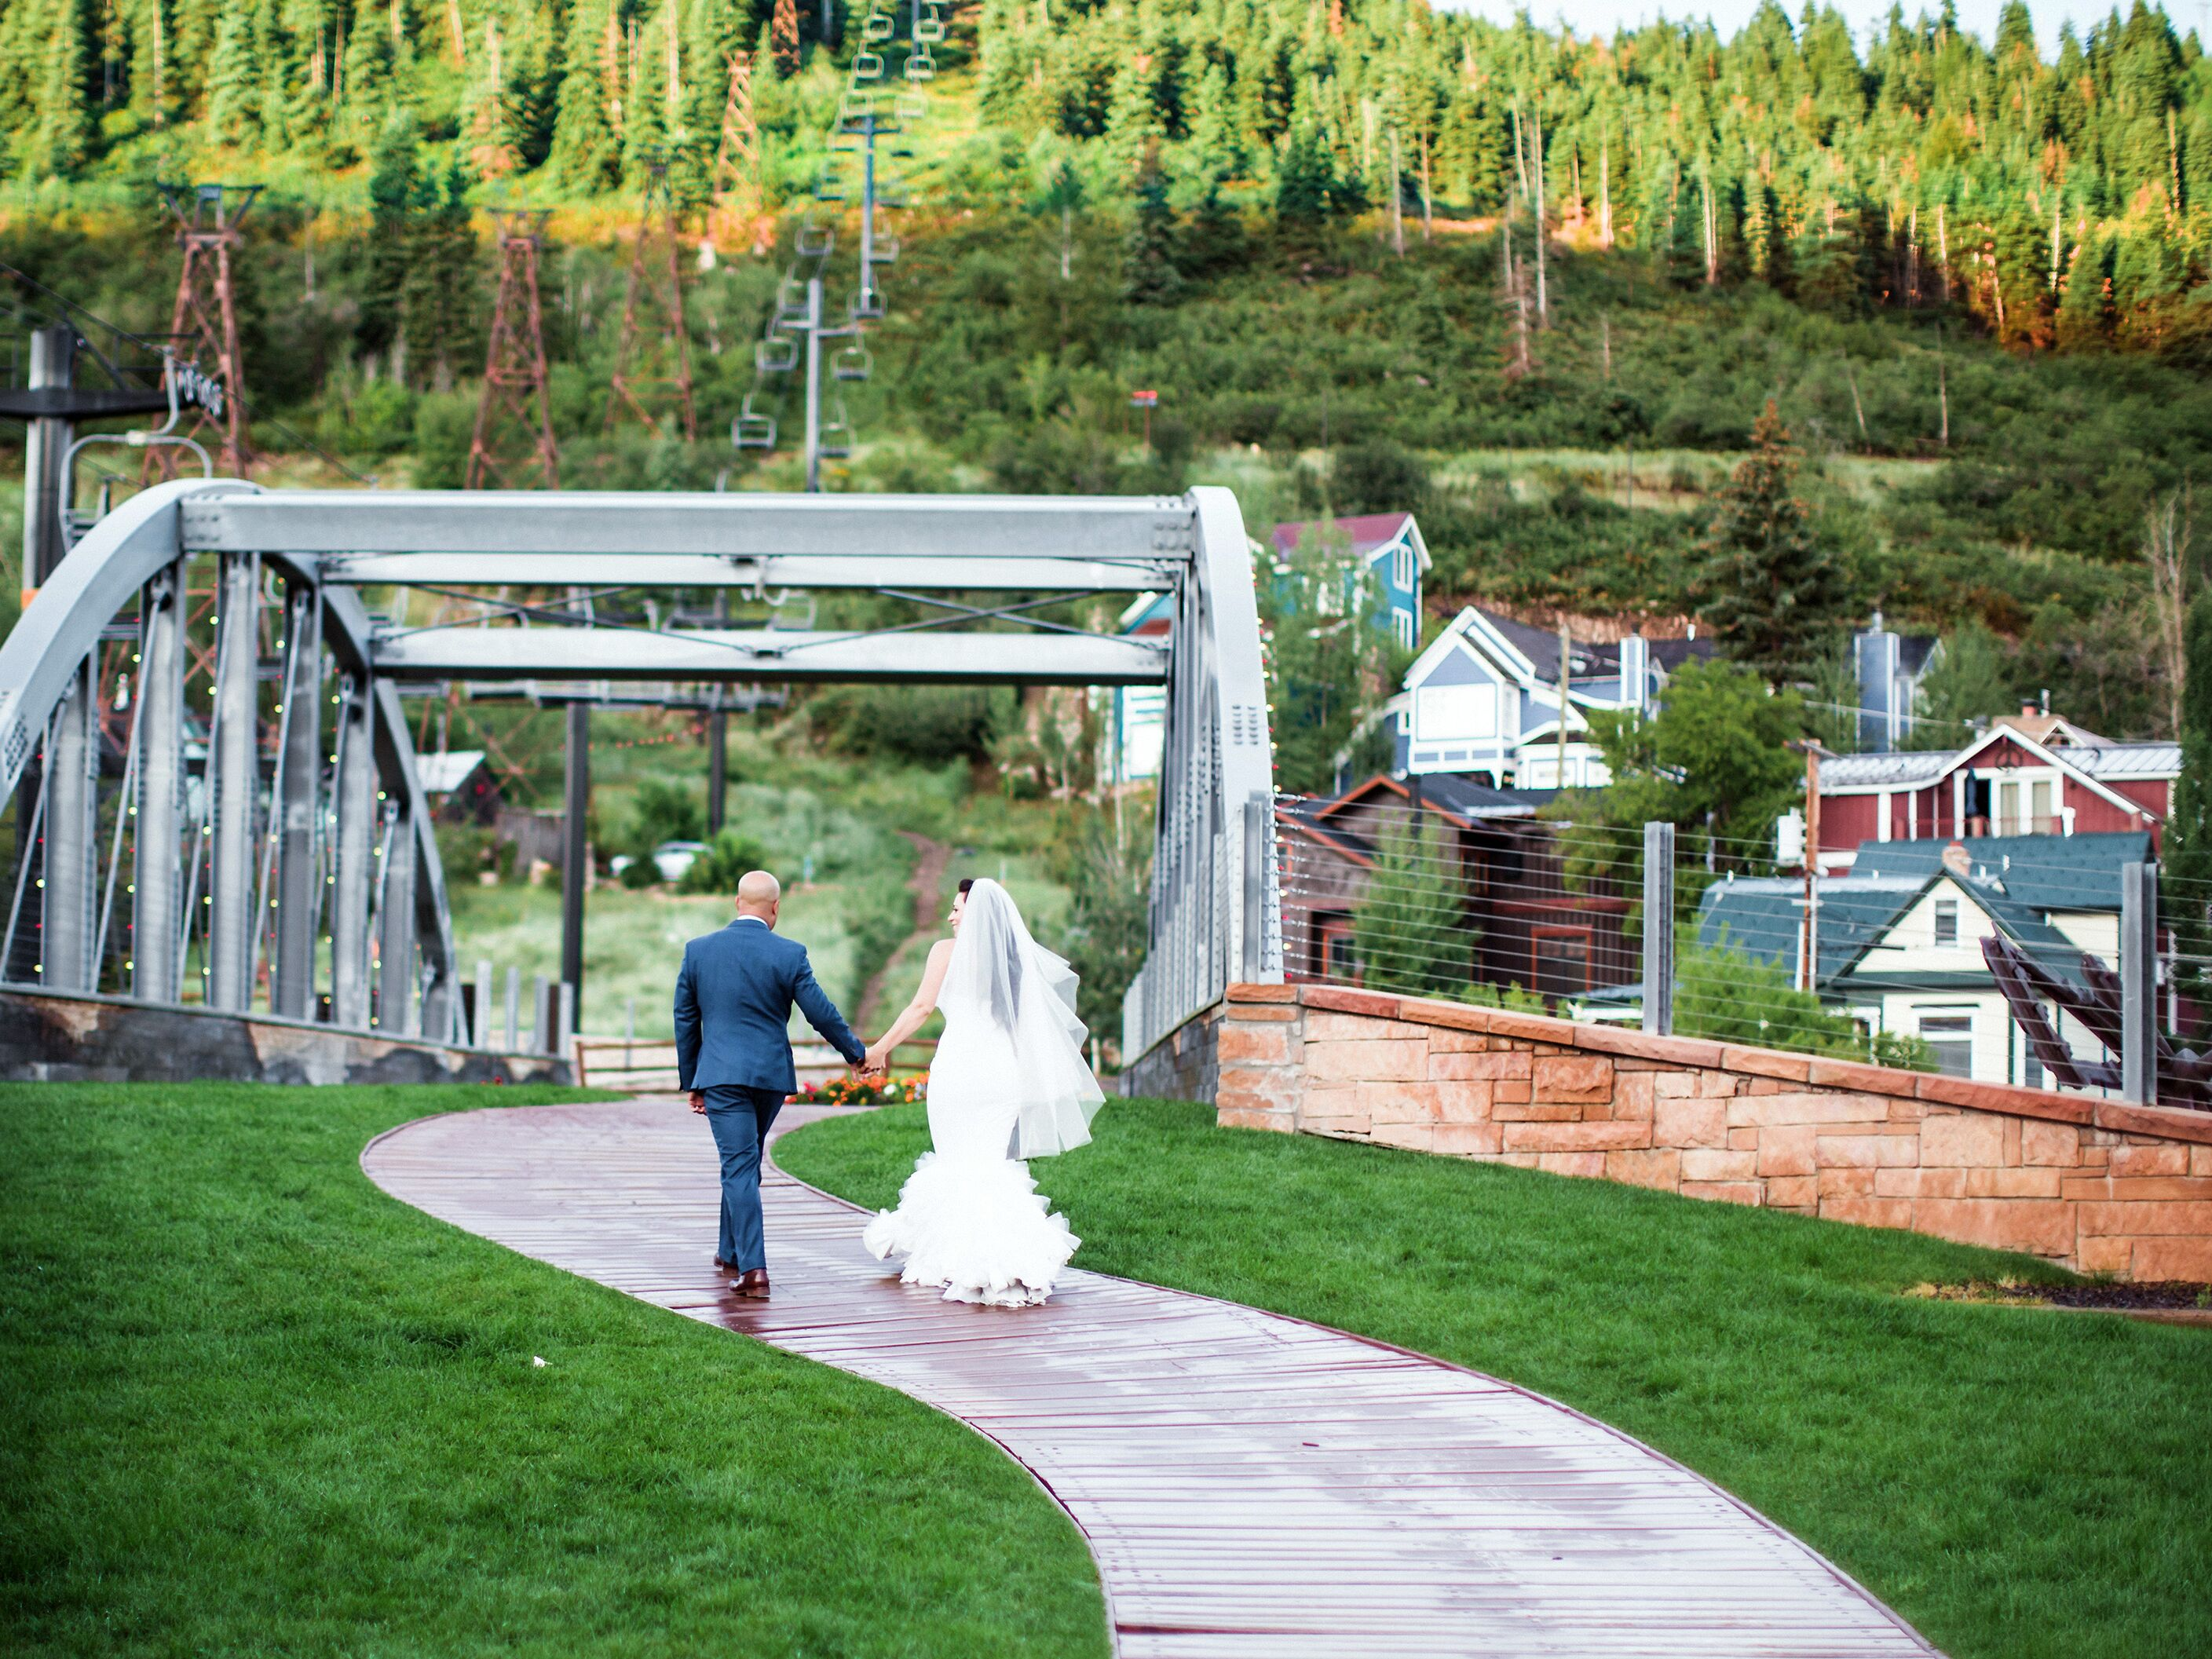 Top 50 destination wedding locations for Best destination weddings locations